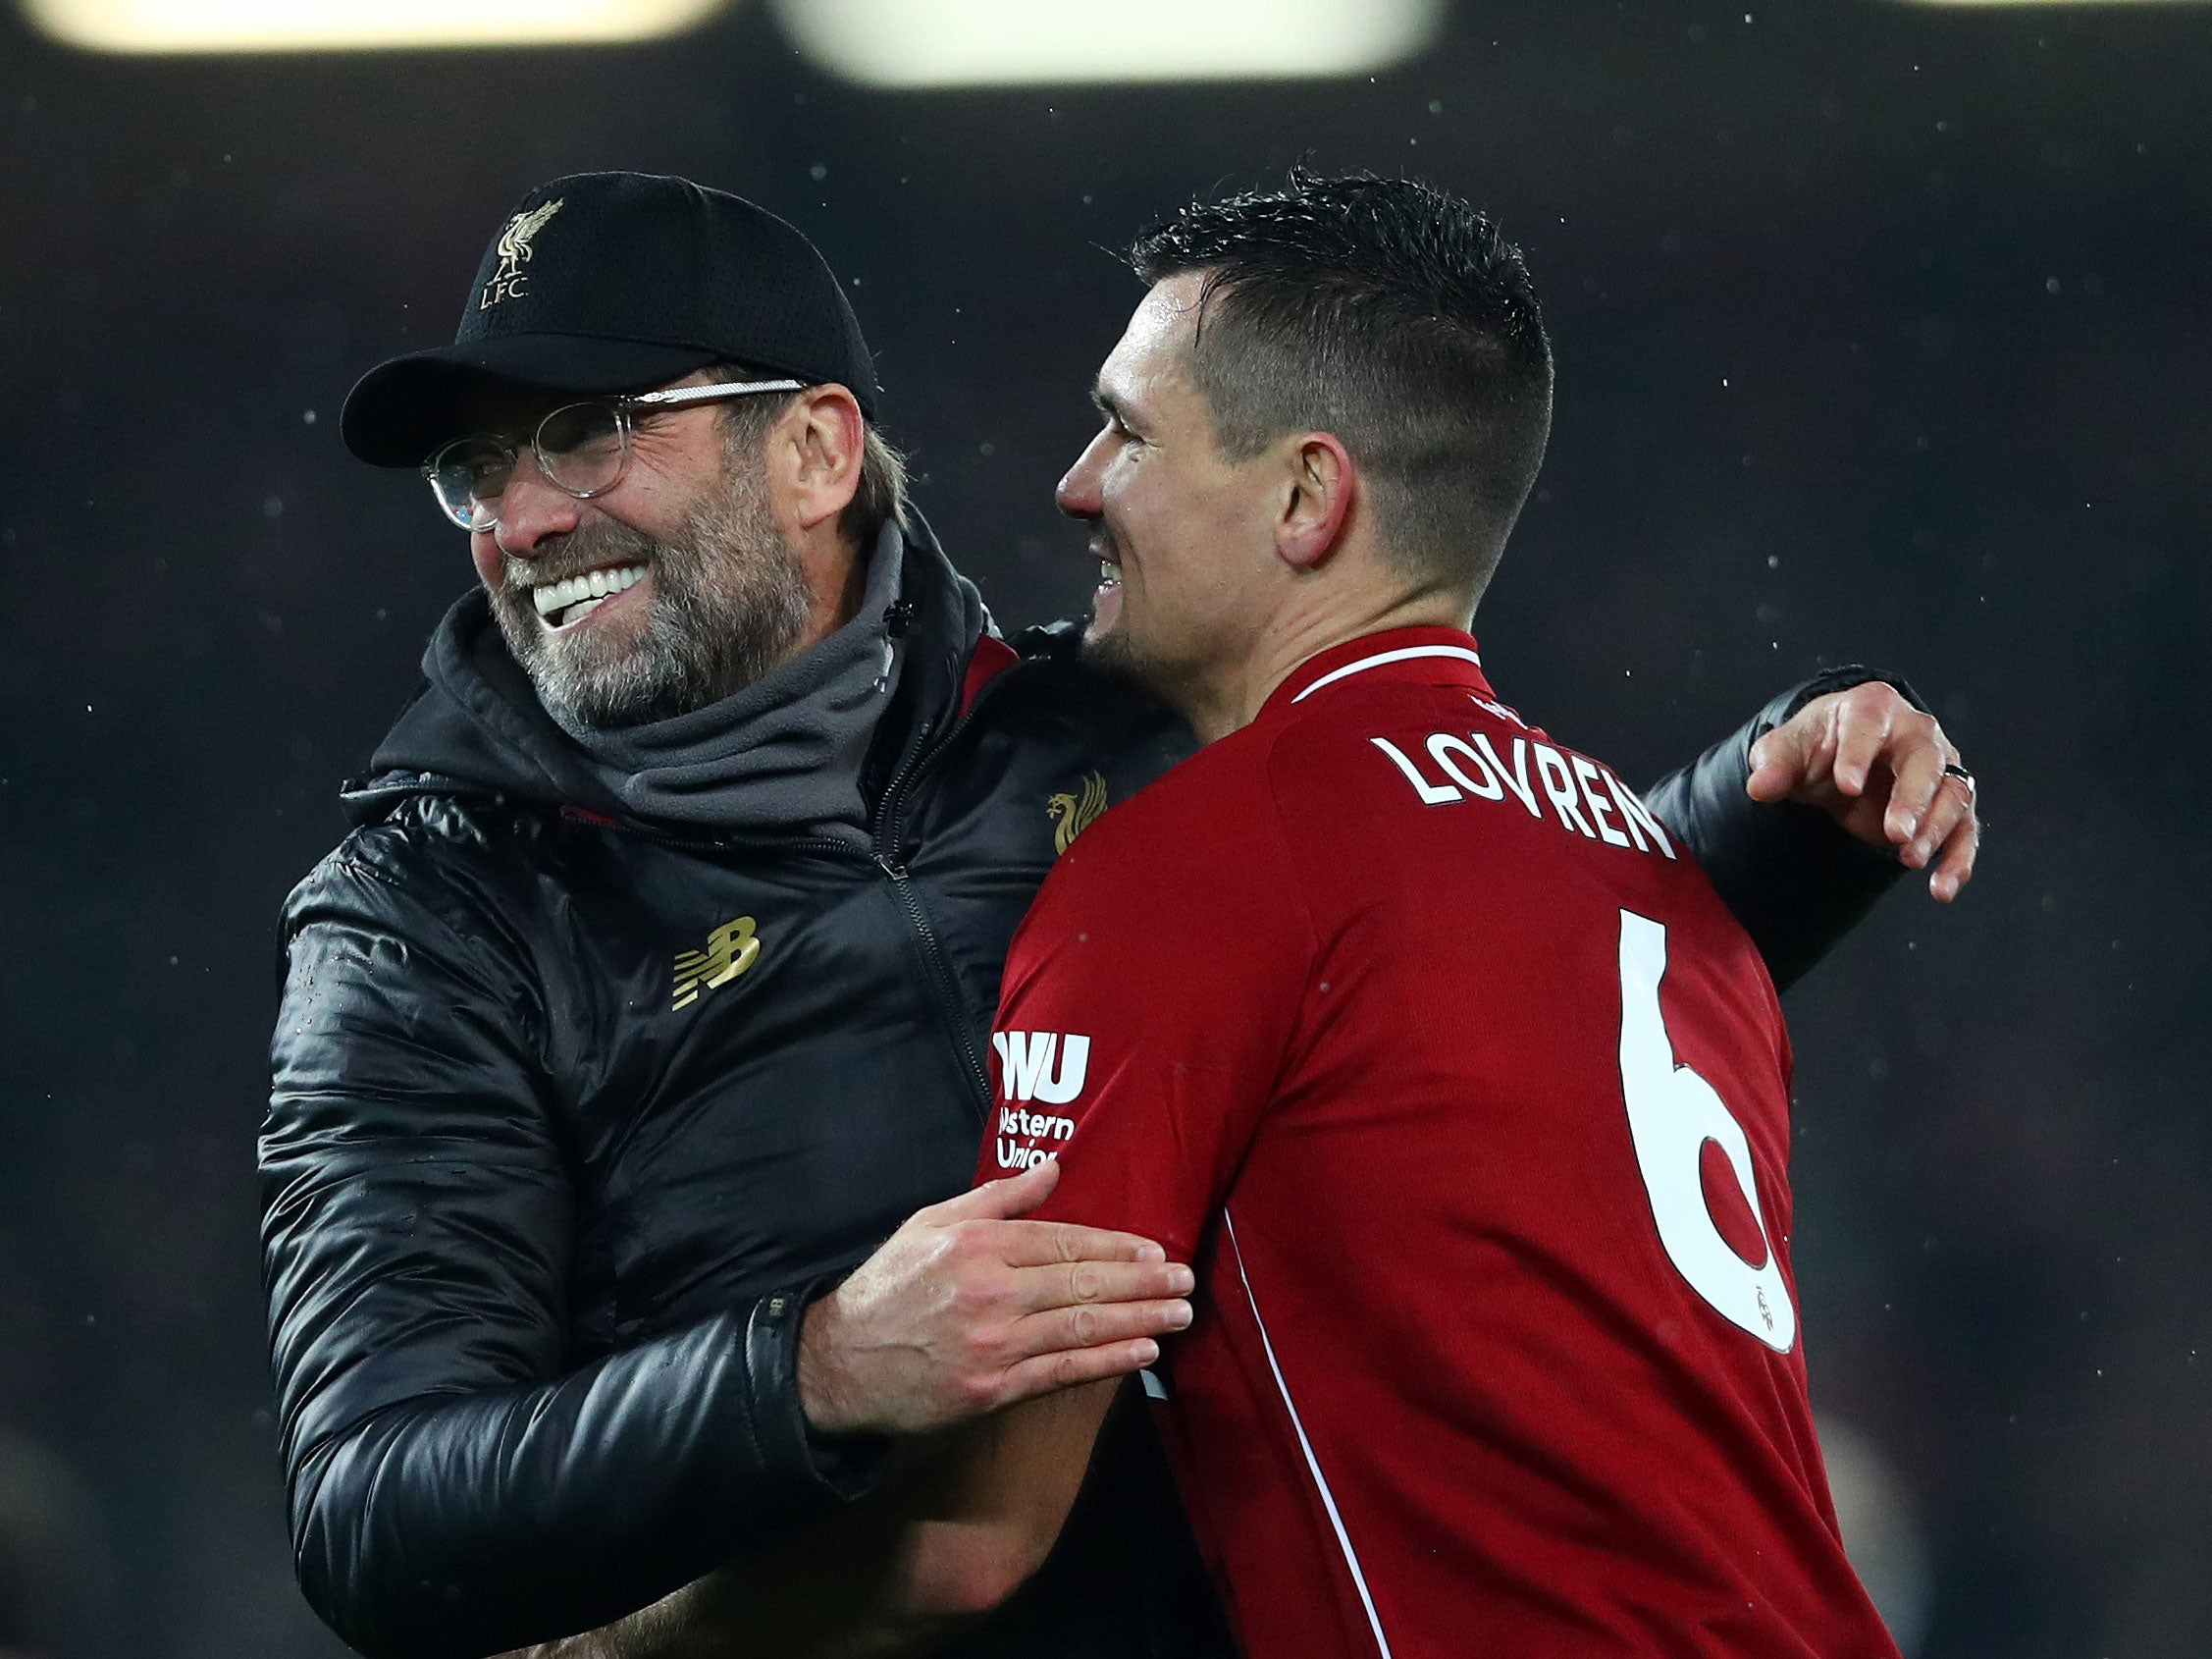 Liverpool: Dejan Lovren hails Jurgen Klopp's impact at club ahead of clash with Tottenham